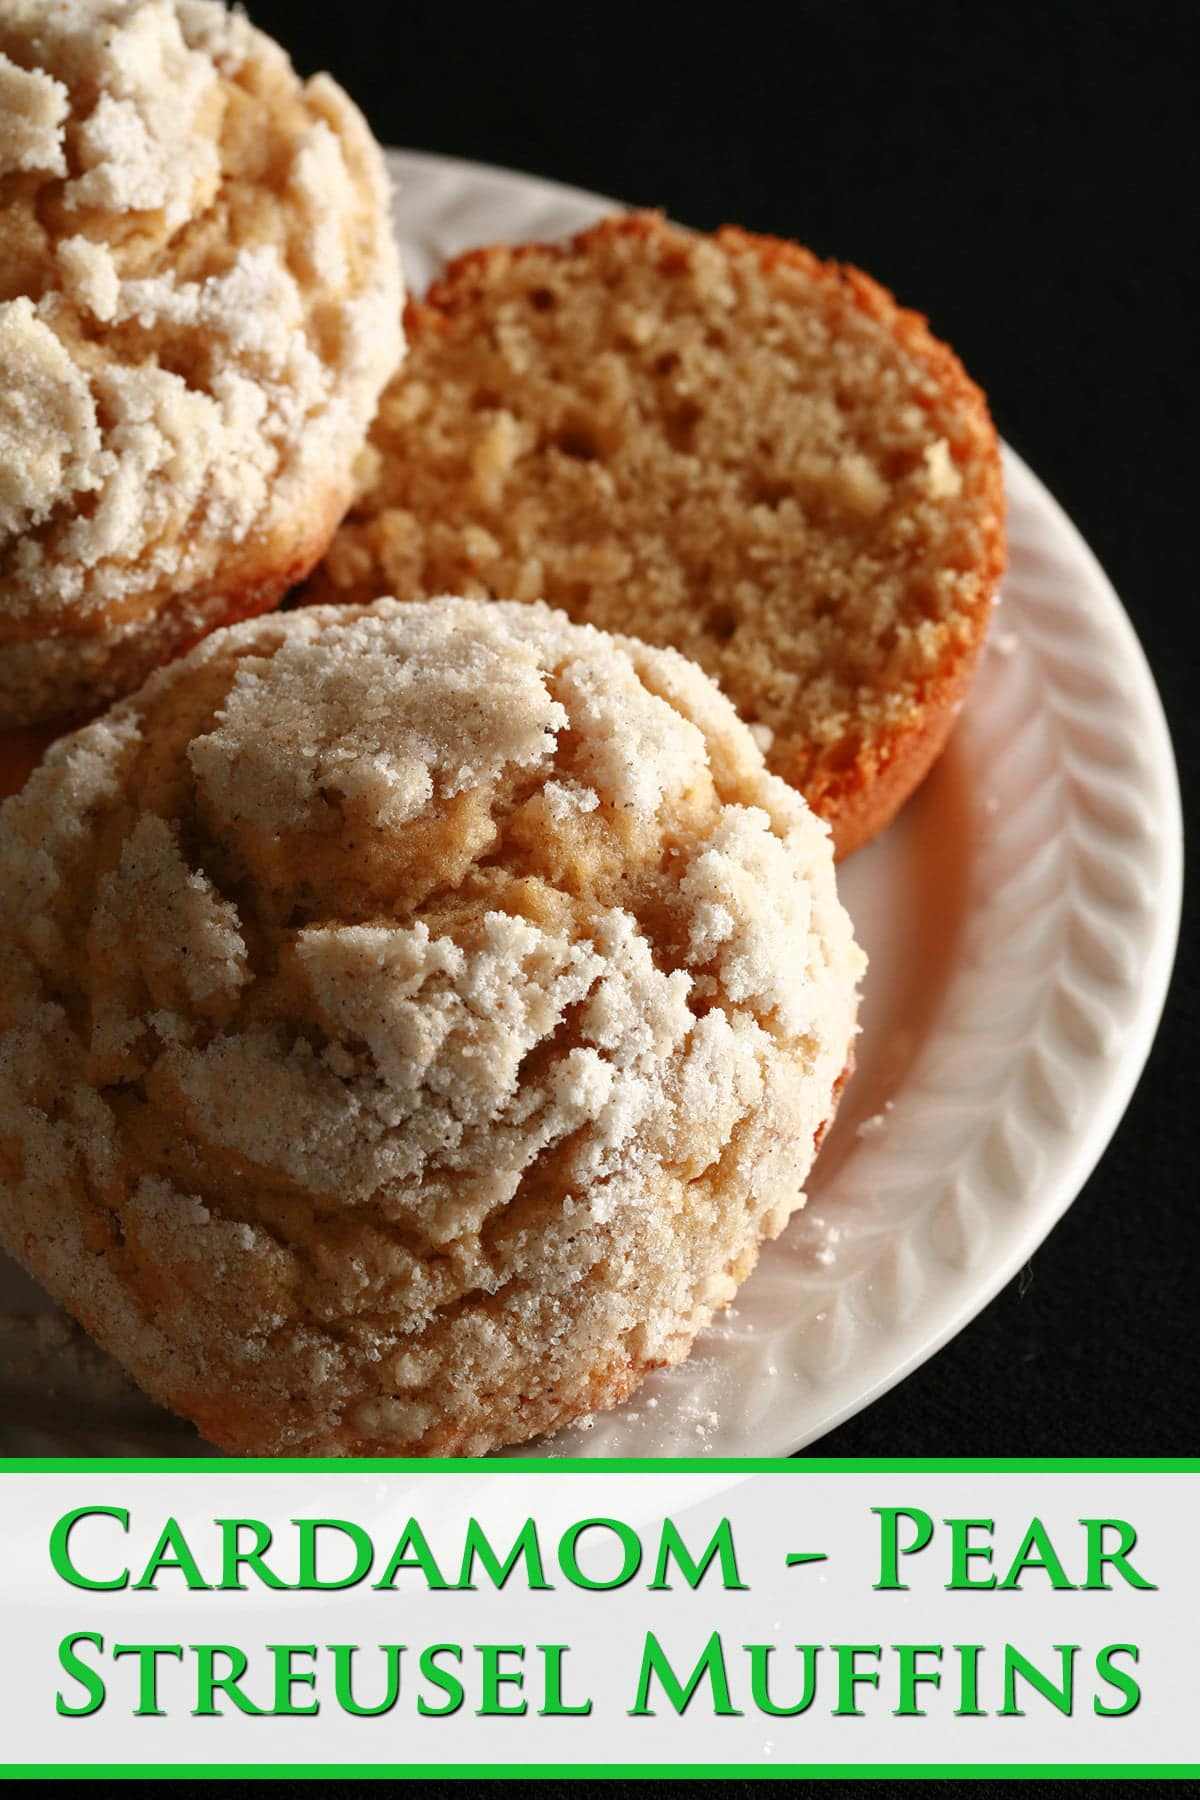 Two cardamom pear streusel muffins on a small white plate.